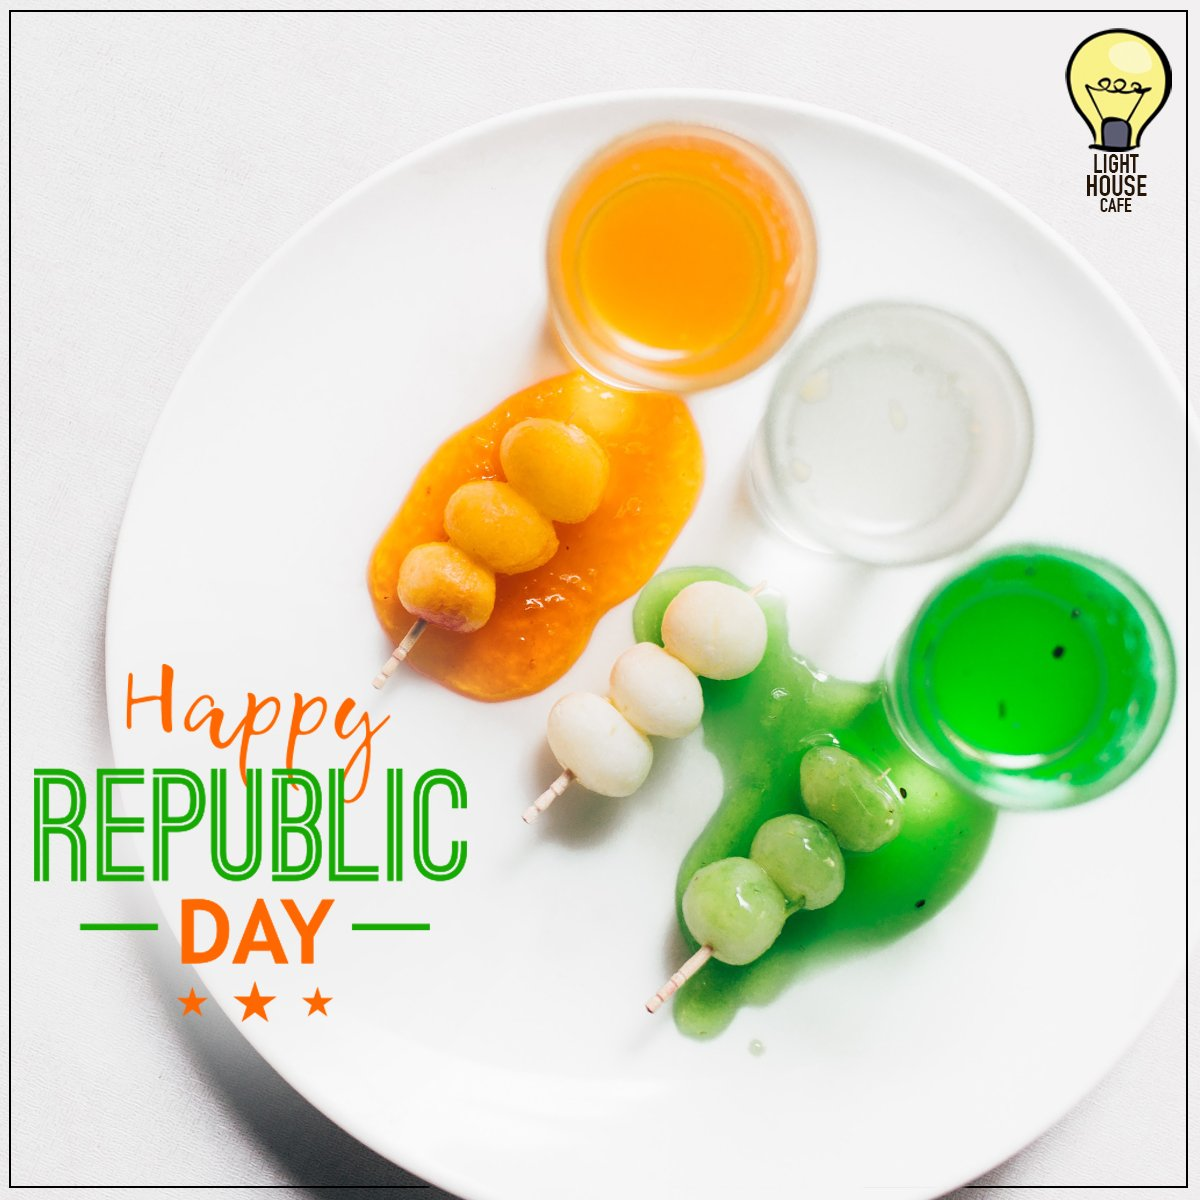 On this special day, let's promise our motherland that we will do everything to enrich and preserve our heritage, ourethos and our treasure.  Happy Republic Day!!  #LHC #Worli #Mumbai #Zomato #Blogpost #bloggers #Weekday #CurlyTales #Weekends #Thingstodo #Mumbaifoodie